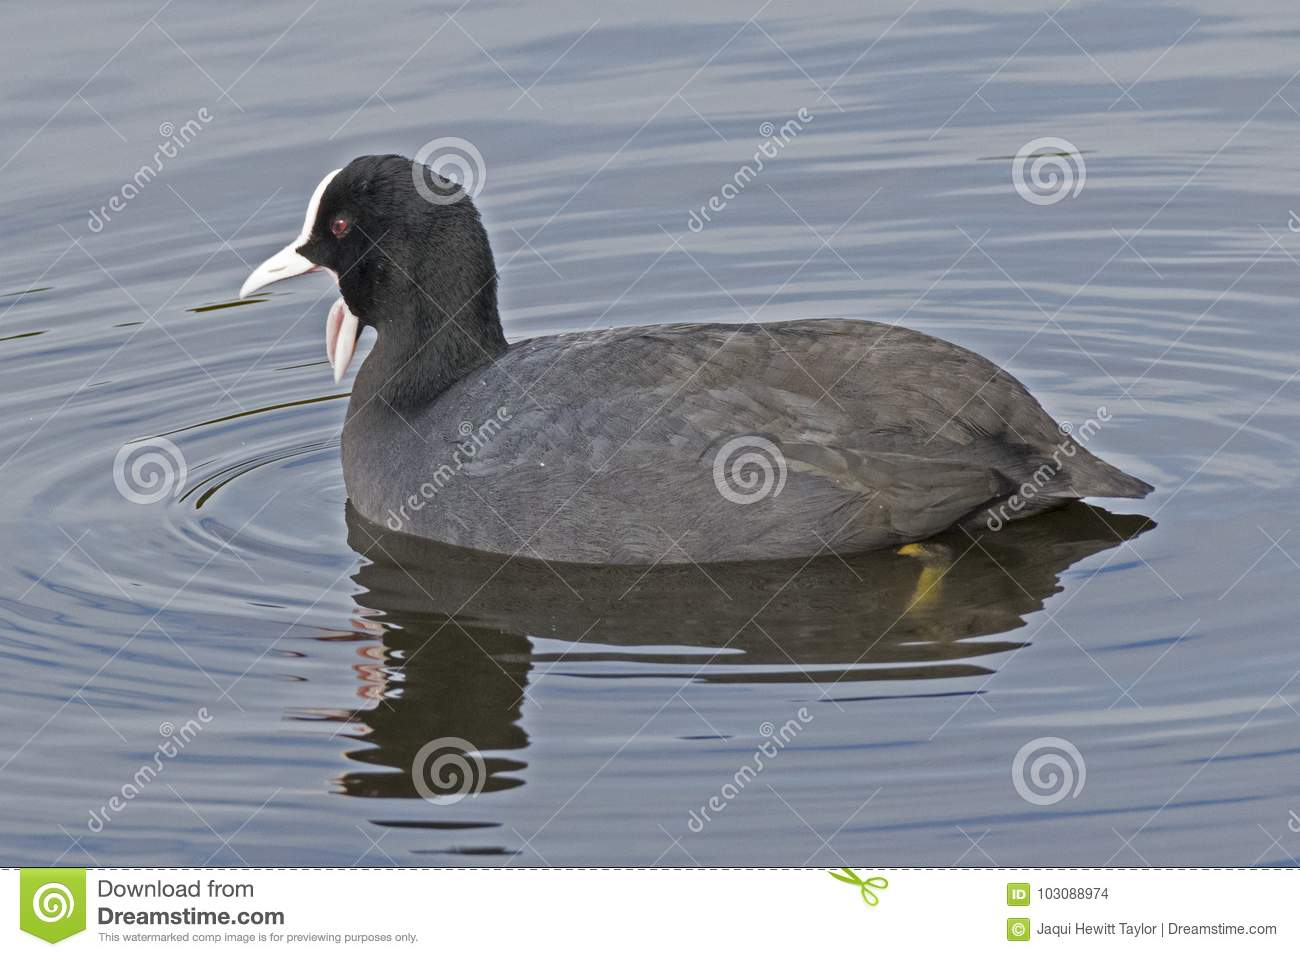 A coot with open beak